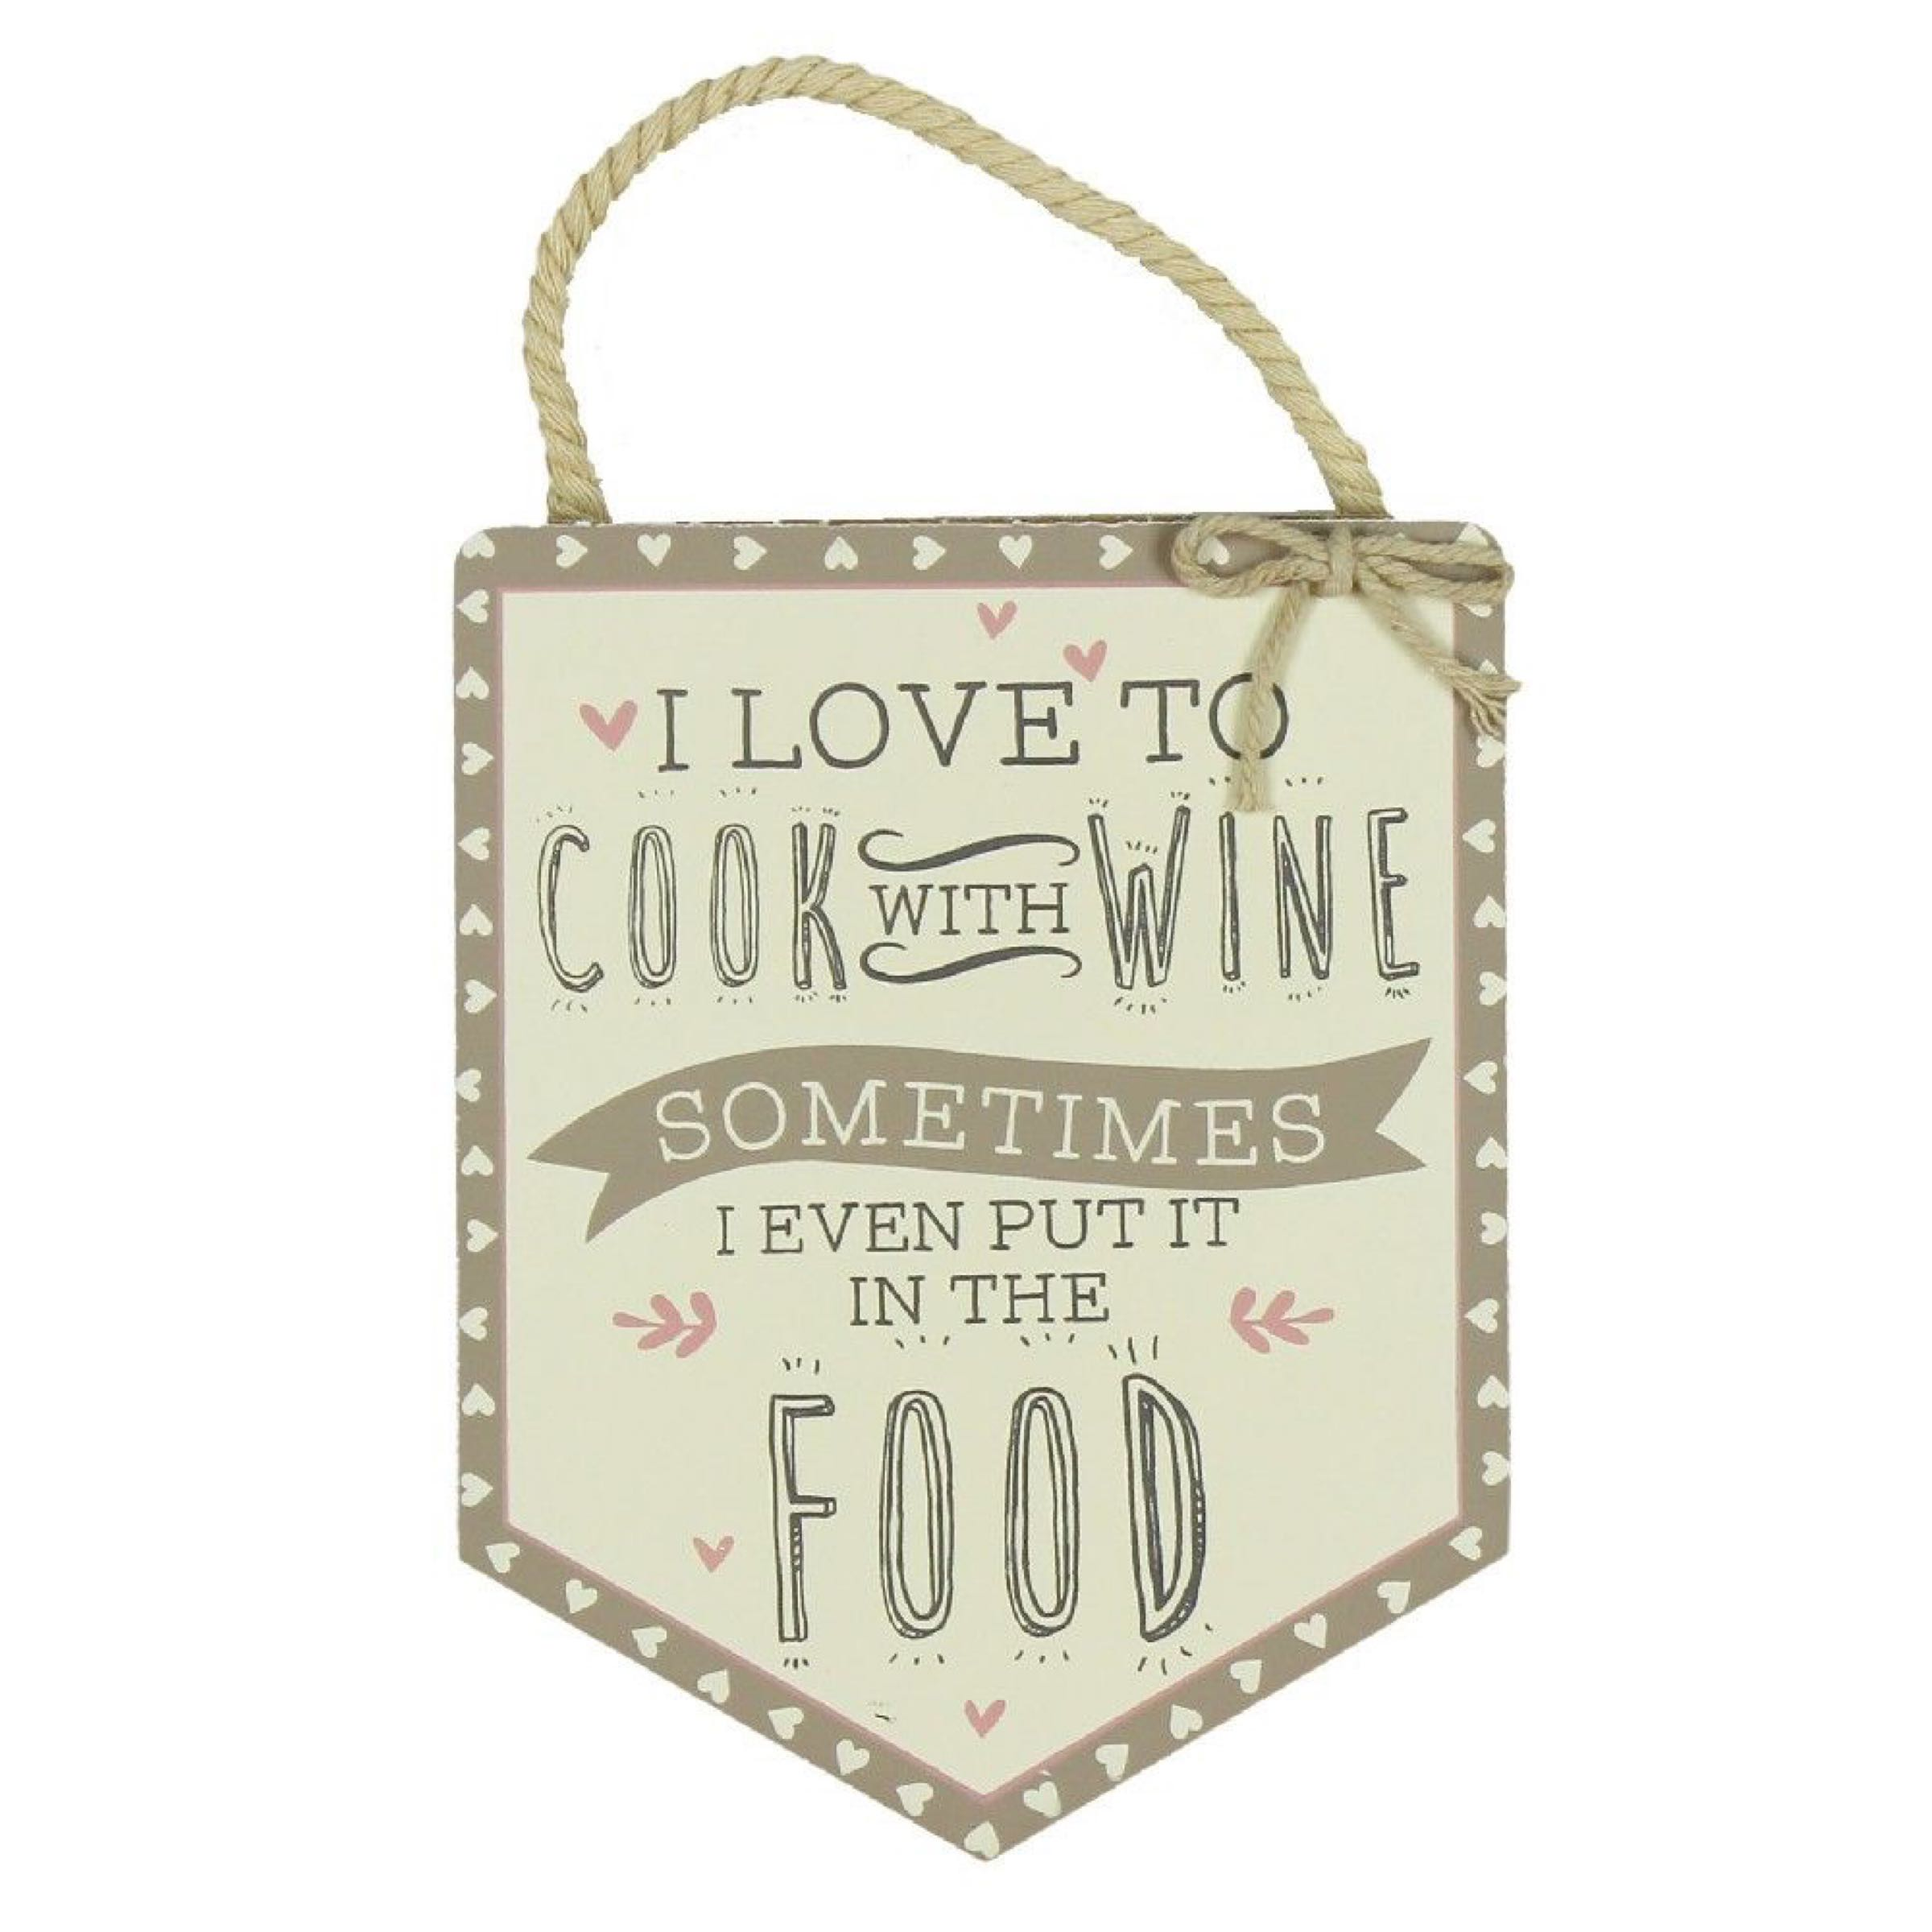 Cook with Wine Pendant Plaque